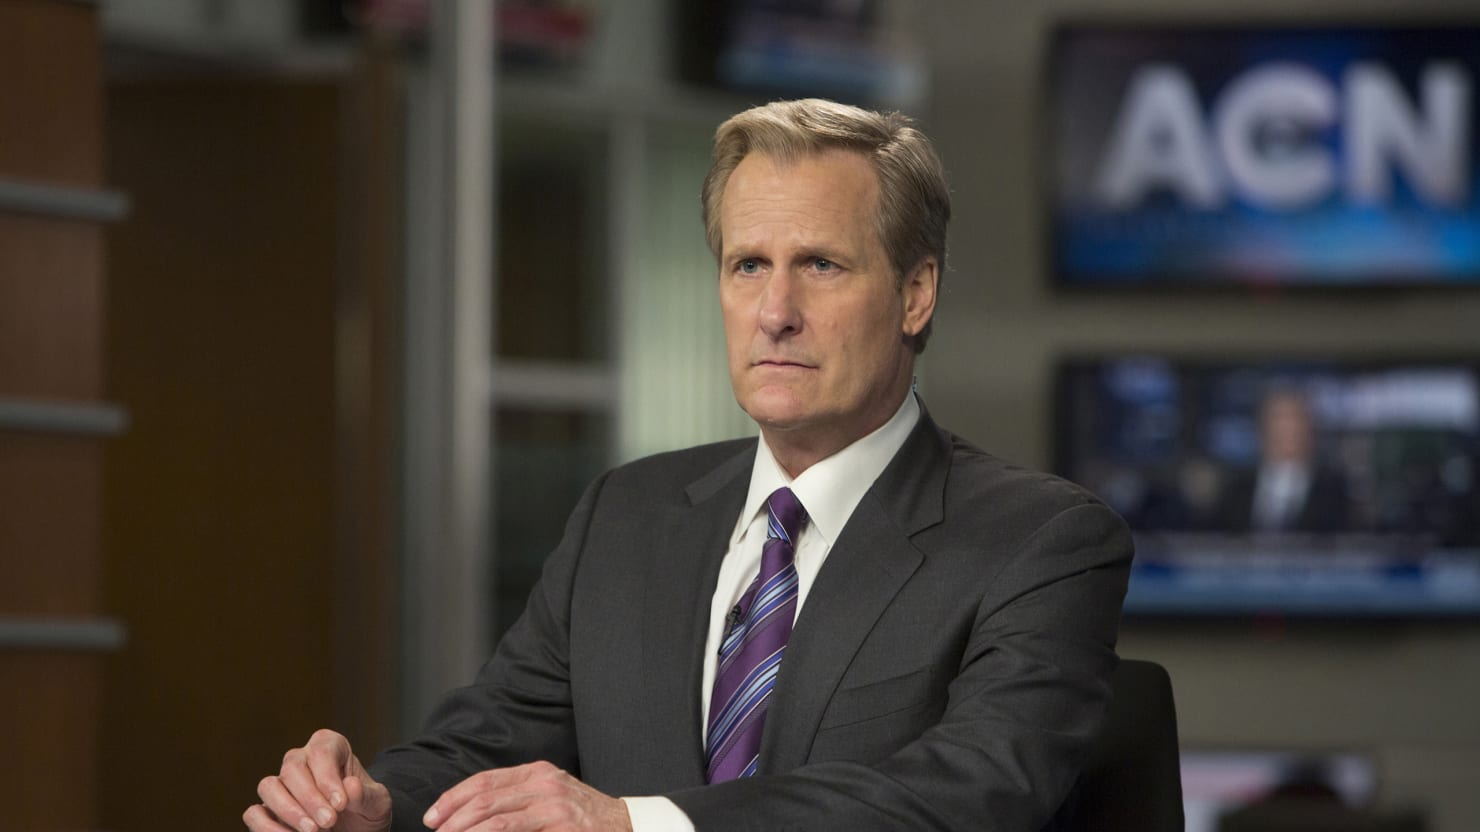 'The Newsroom' Ended As It Began: Noble, Controversial ...